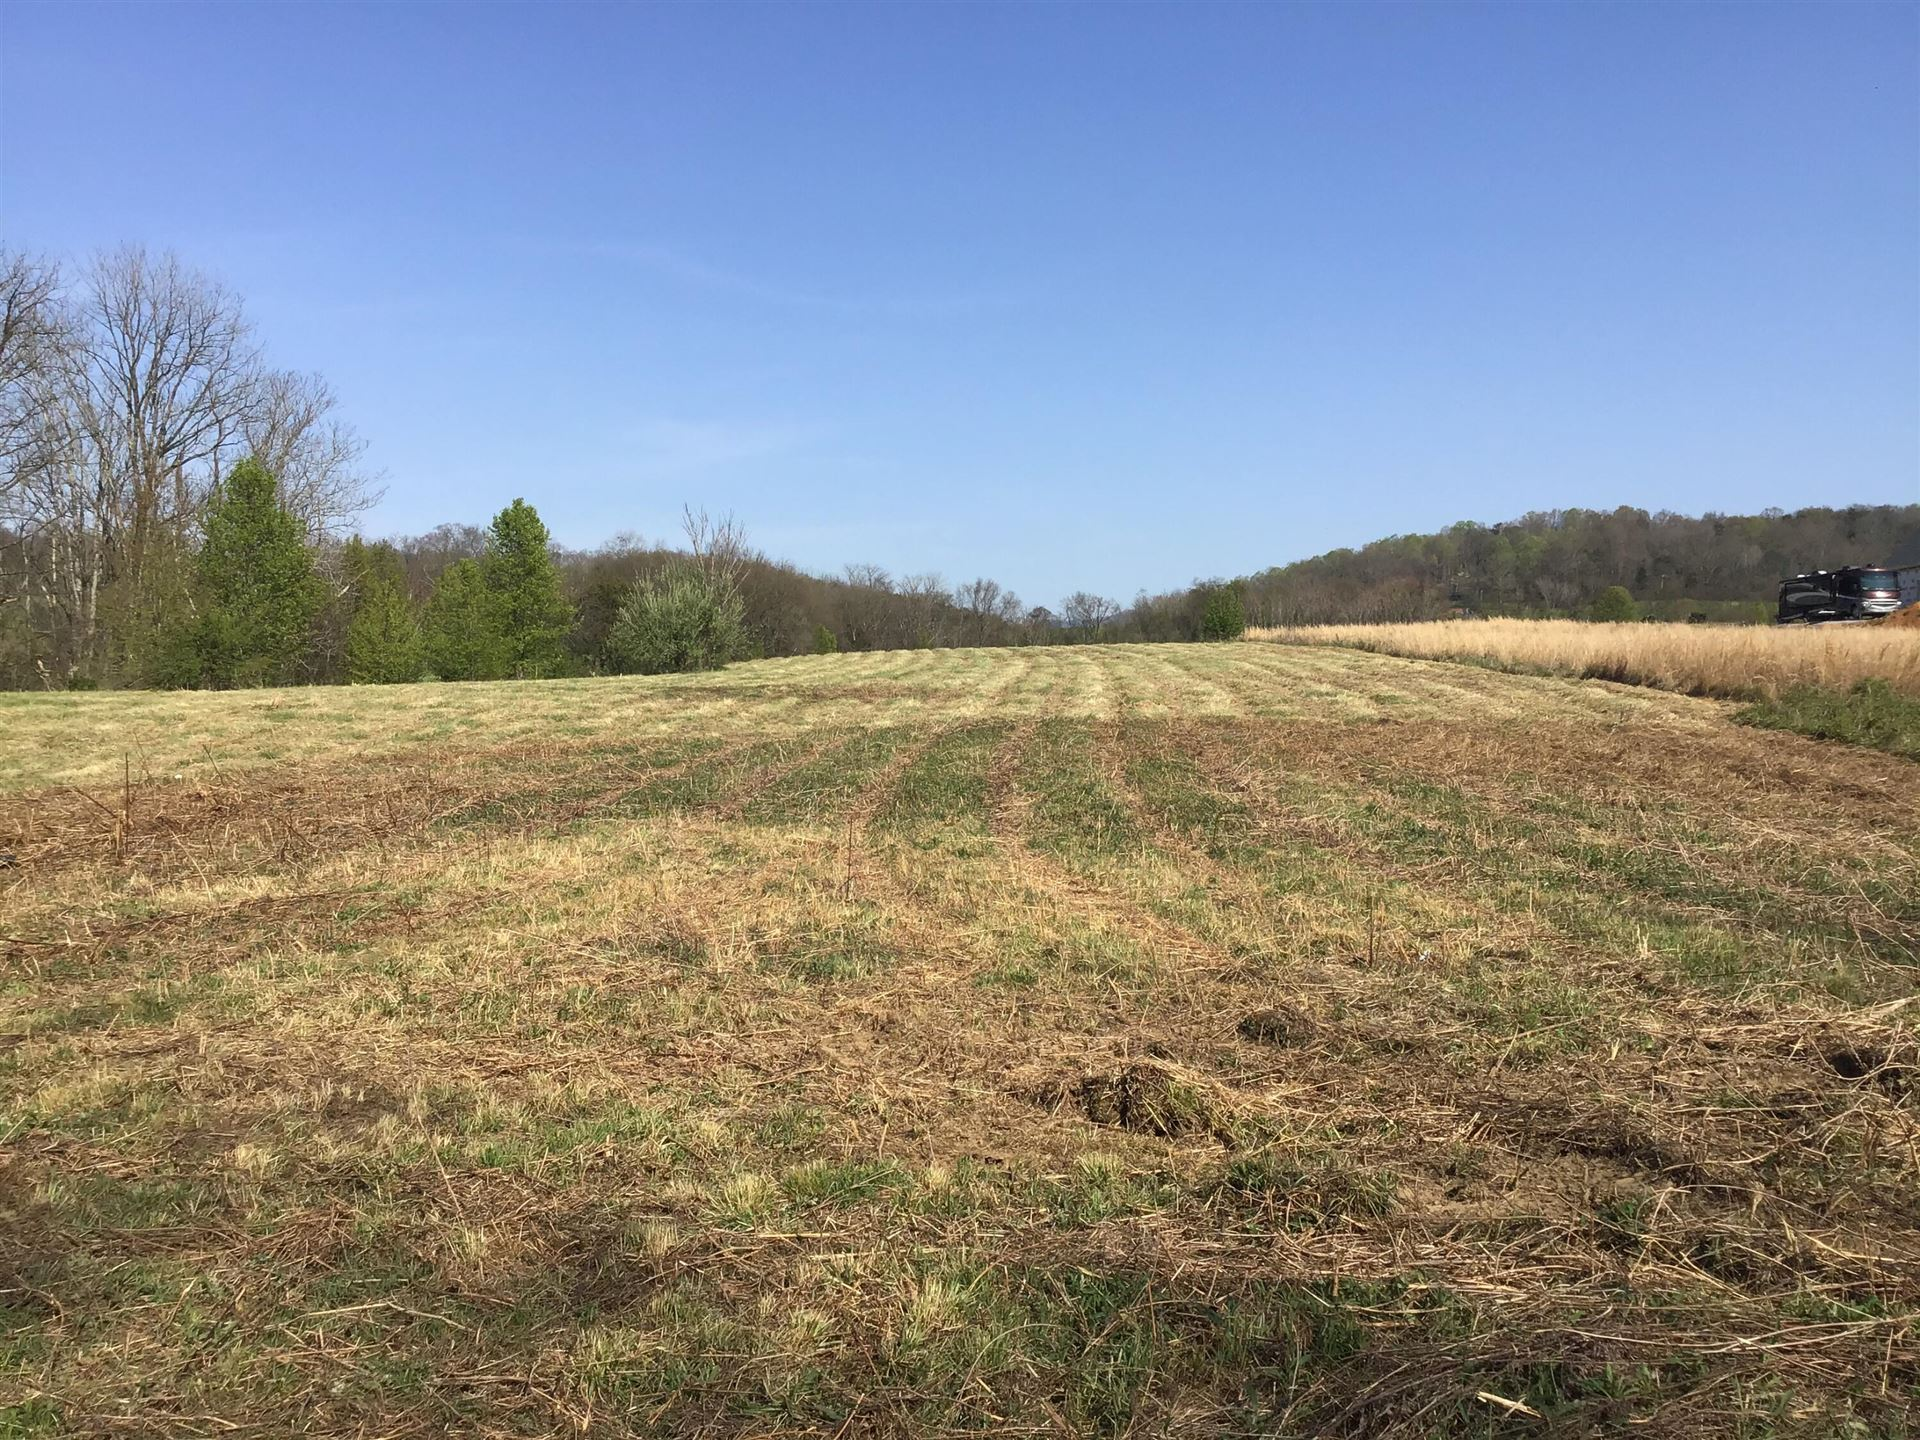 Photo of Lot 14 Secluded River Circle, Parrotsville, TN 37843 (MLS # 288483)